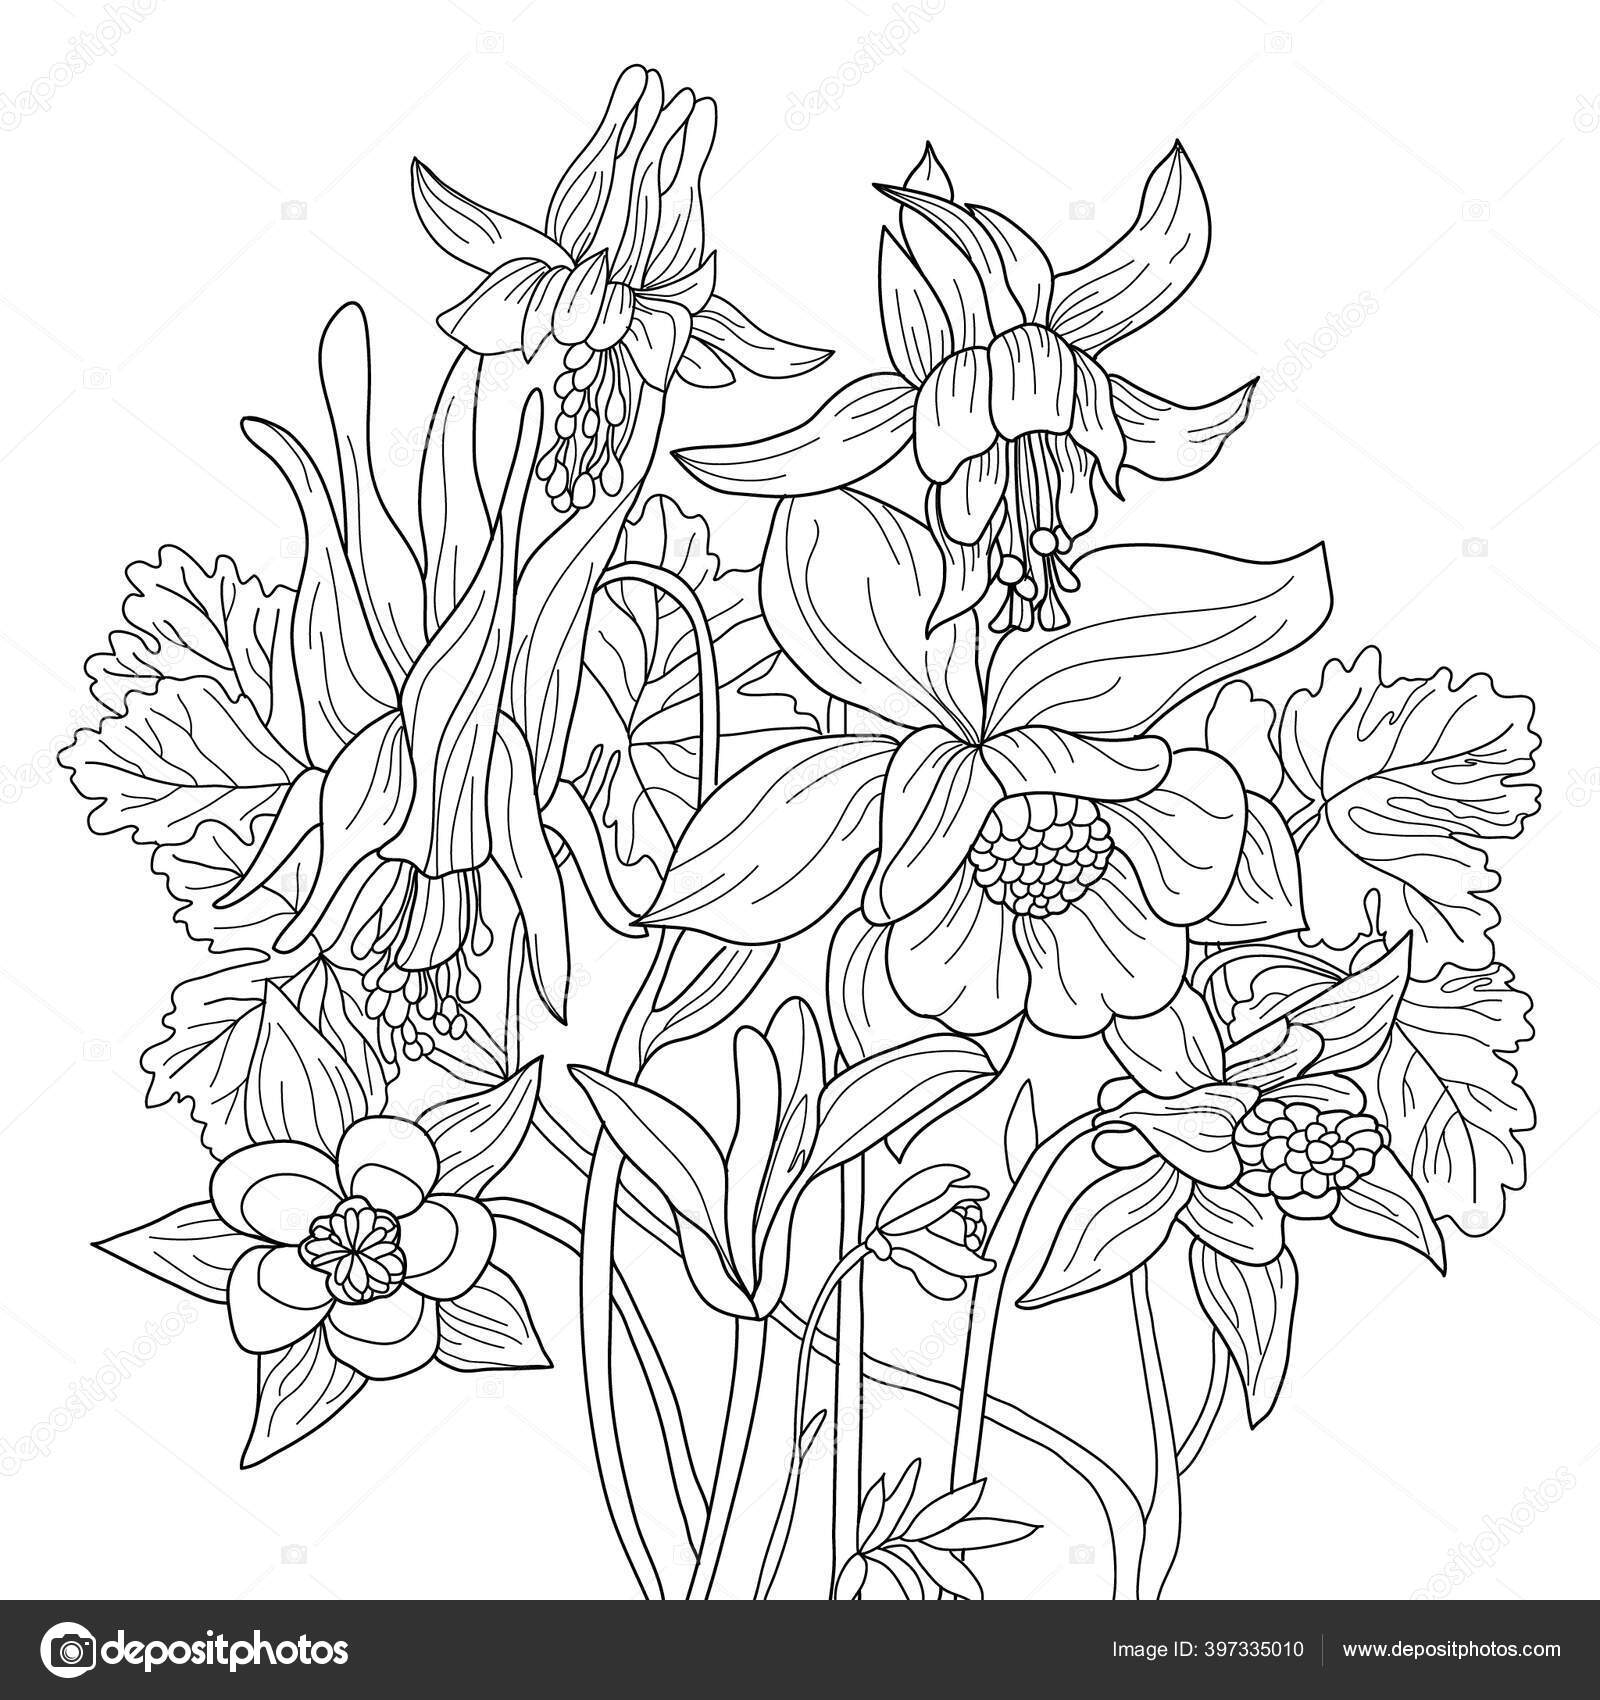 Vector Coloring Botanical Illustration Columbine Flowers Colouring Page Floral Print Stock Photo C Suriko 397335010